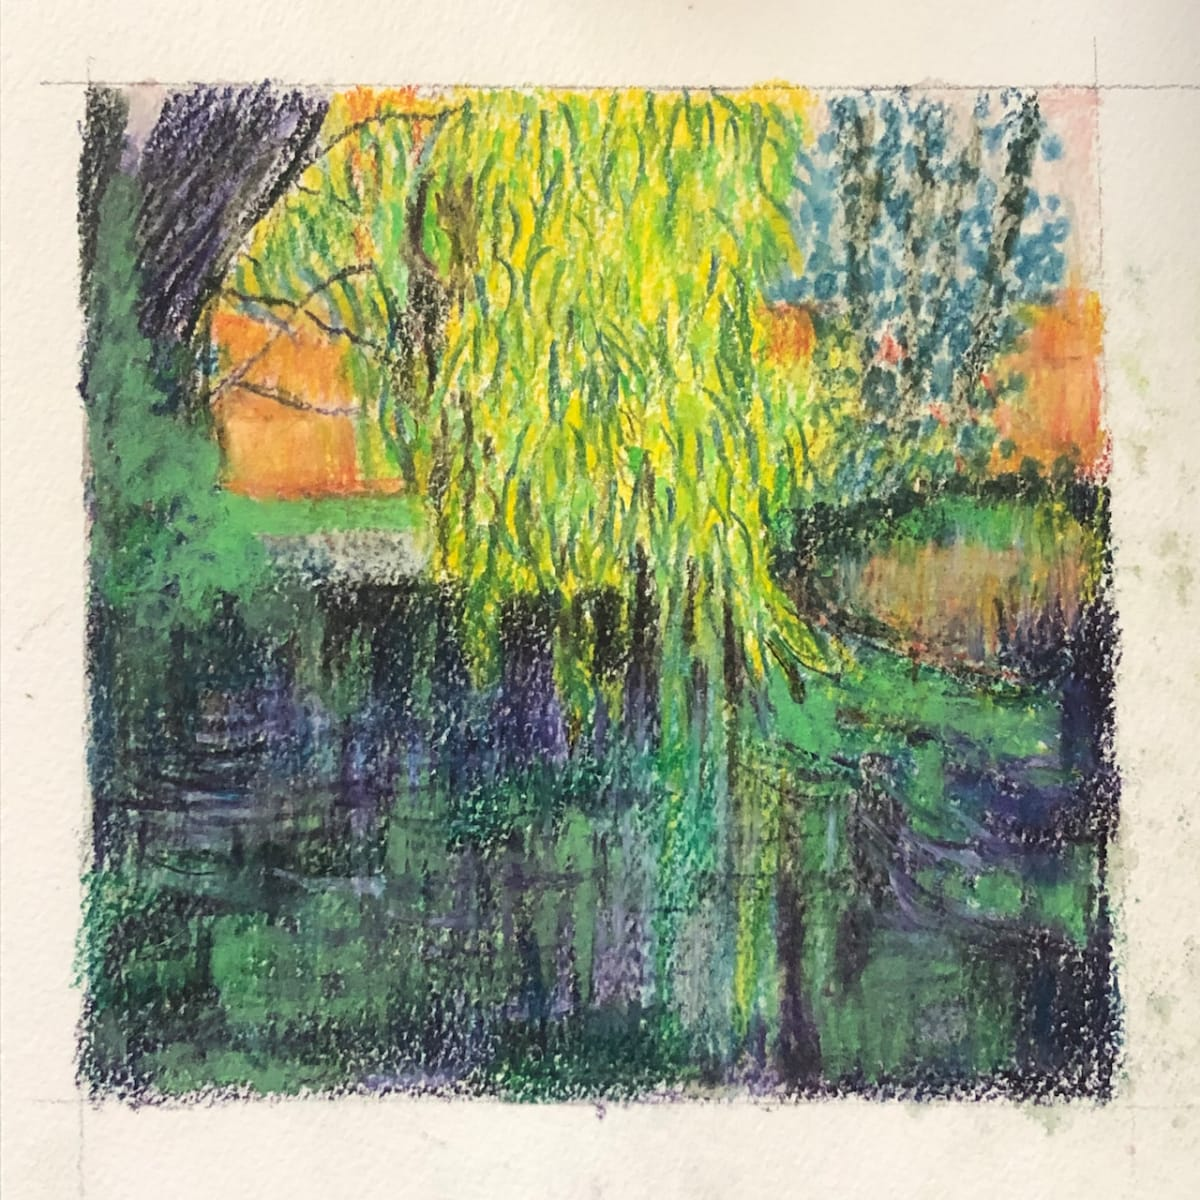 Weeping willow by CLARE SMITH